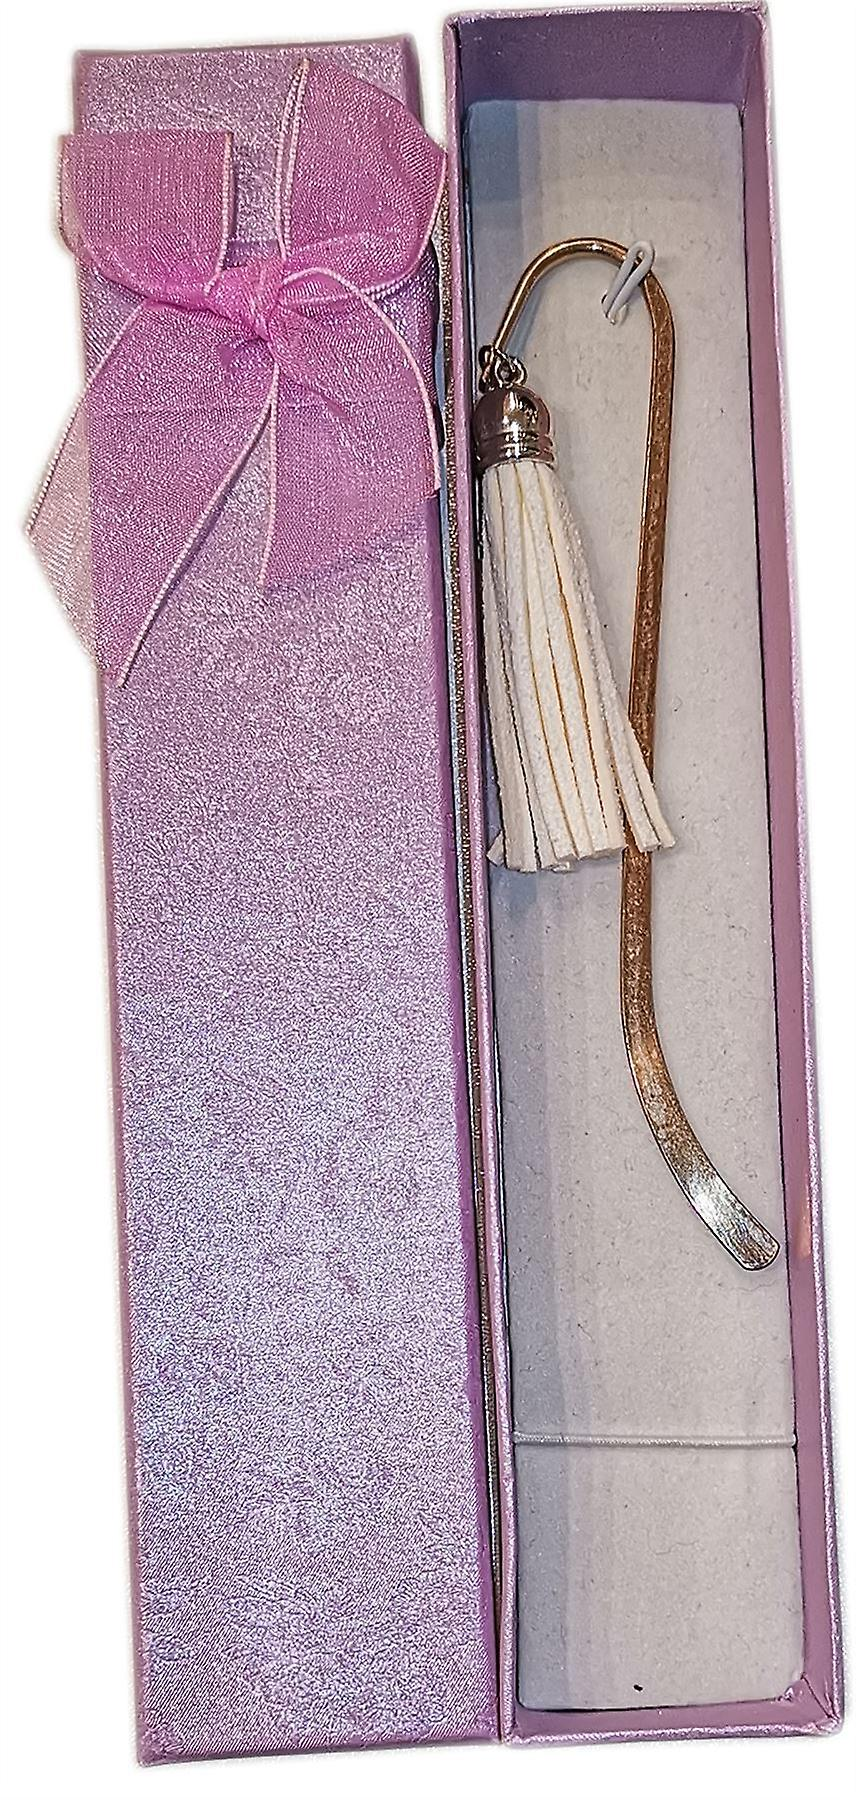 Lilypond Crafts Silver Plated Bookmark with Tassel White